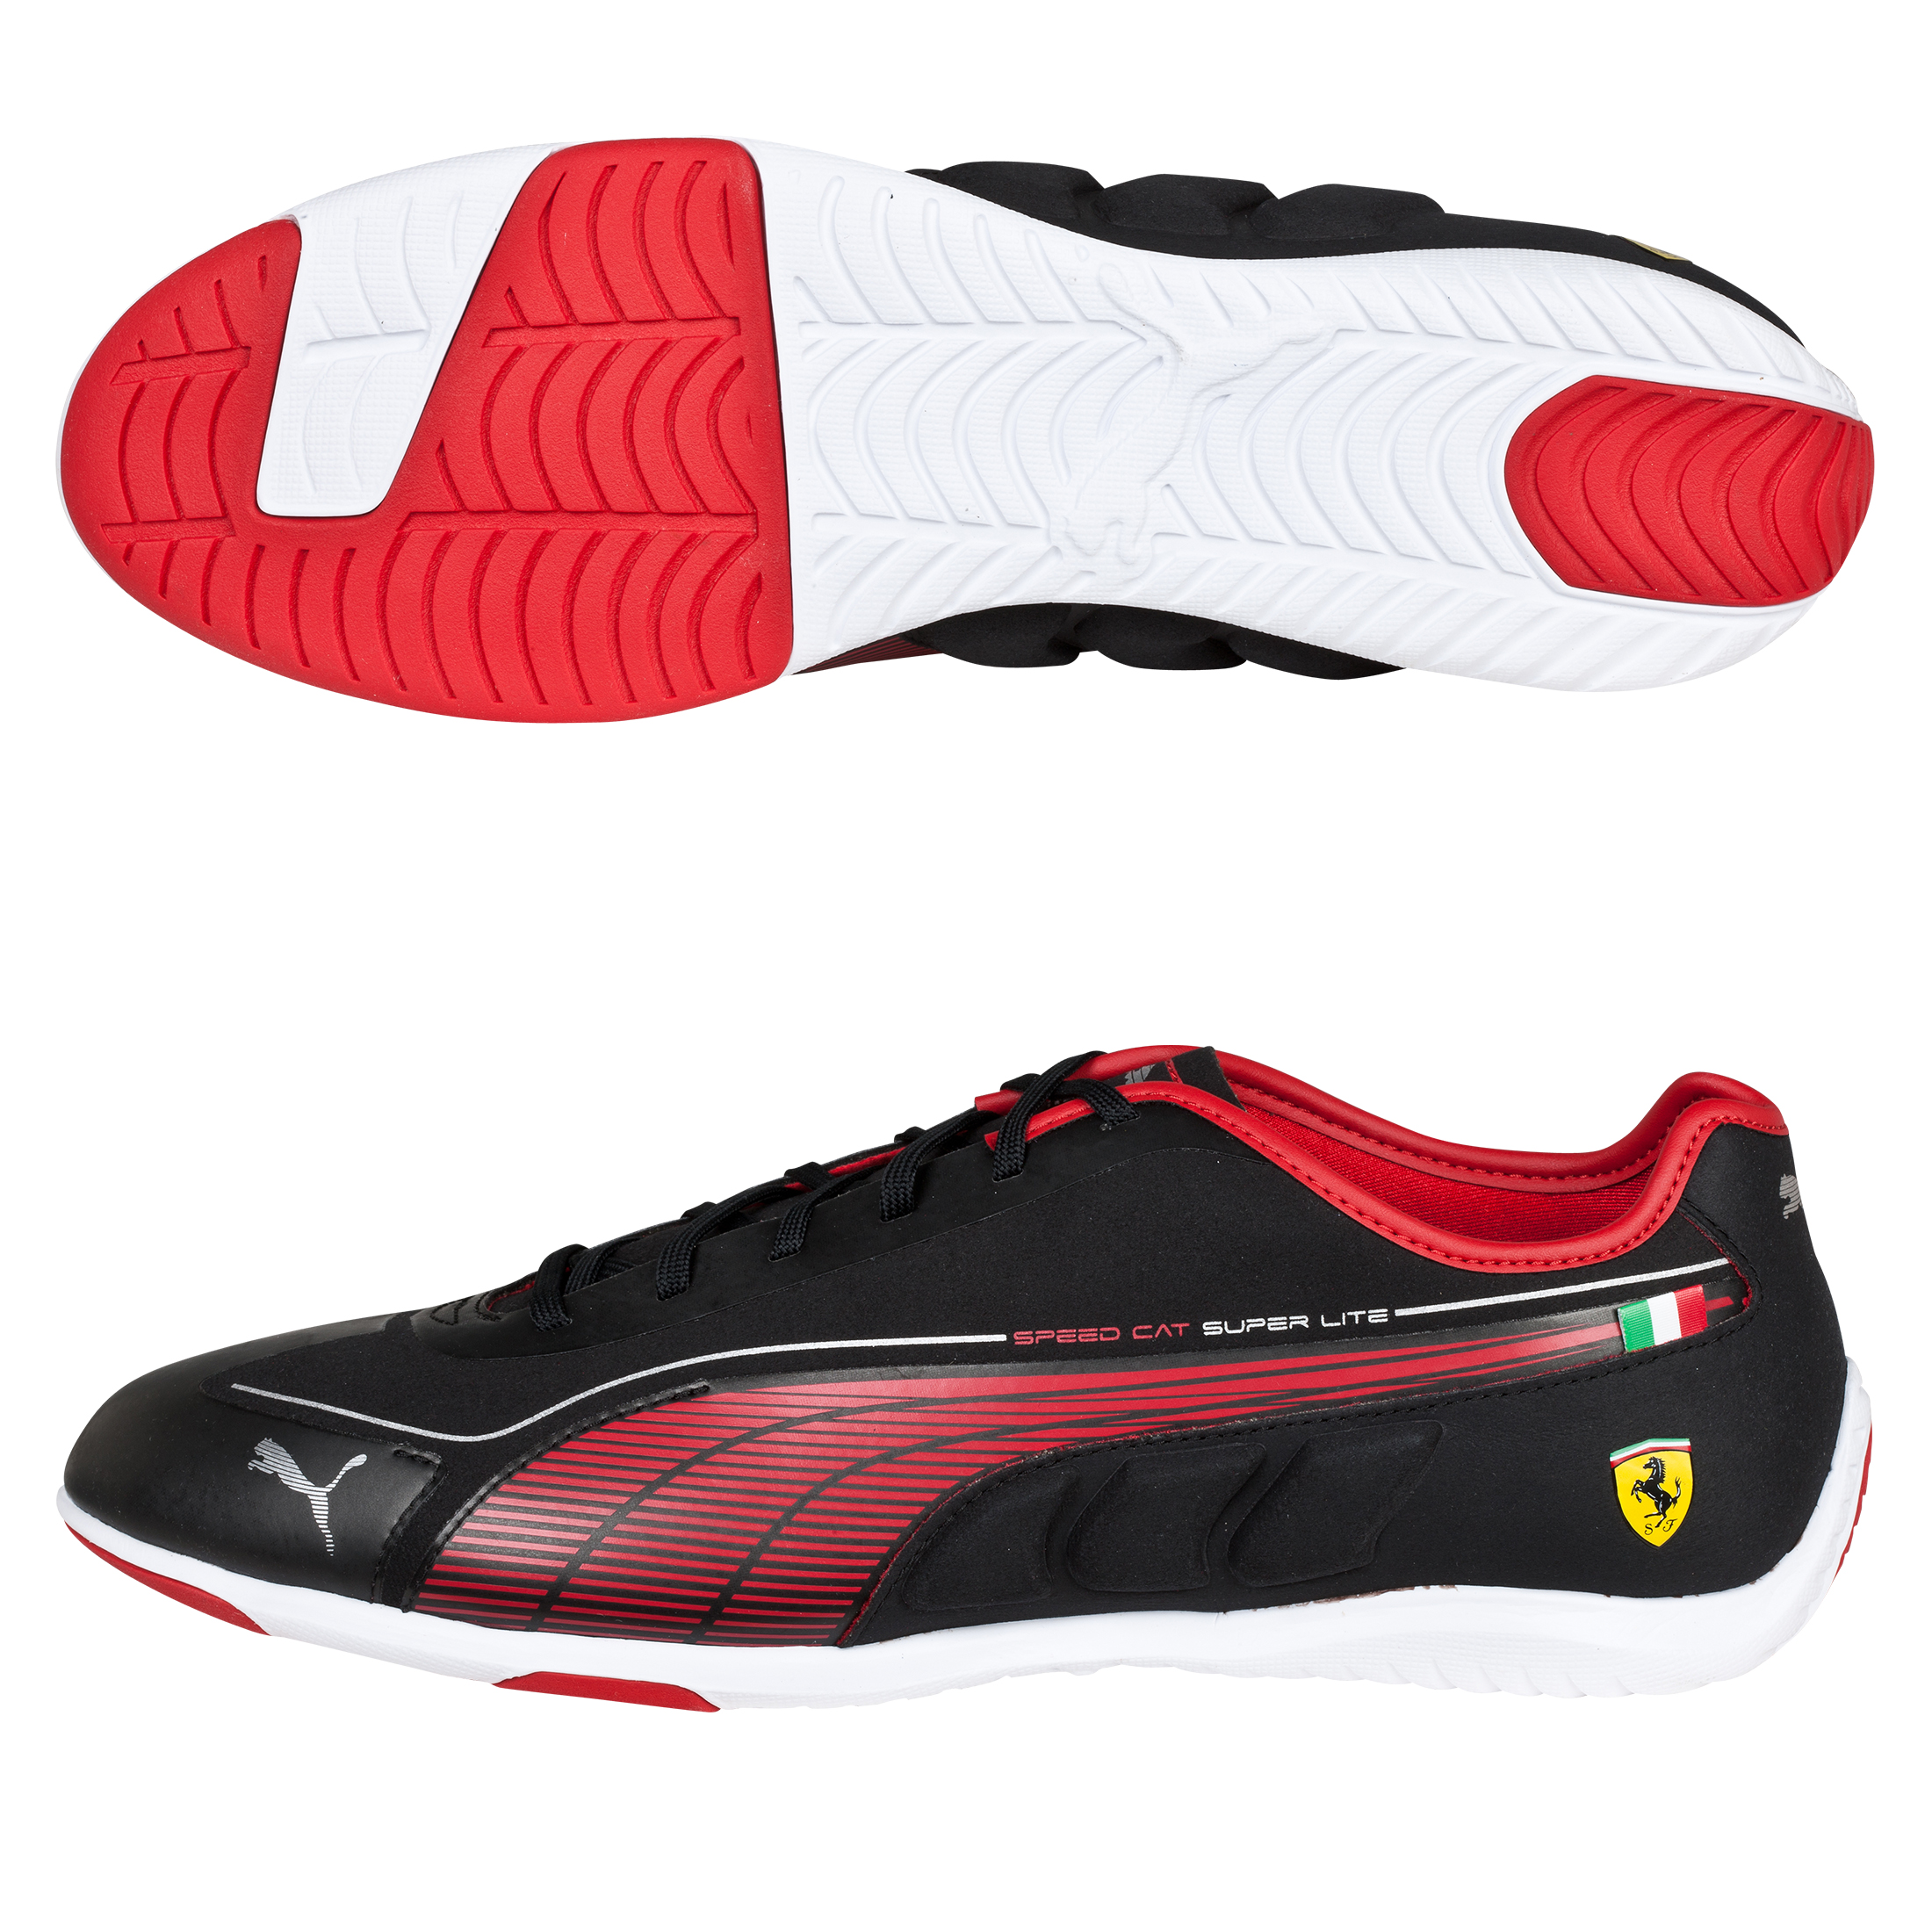 Scuderia Ferrari Scuderia Speed Cat Super Lite Low Trainers - Black/Rosso Corsa